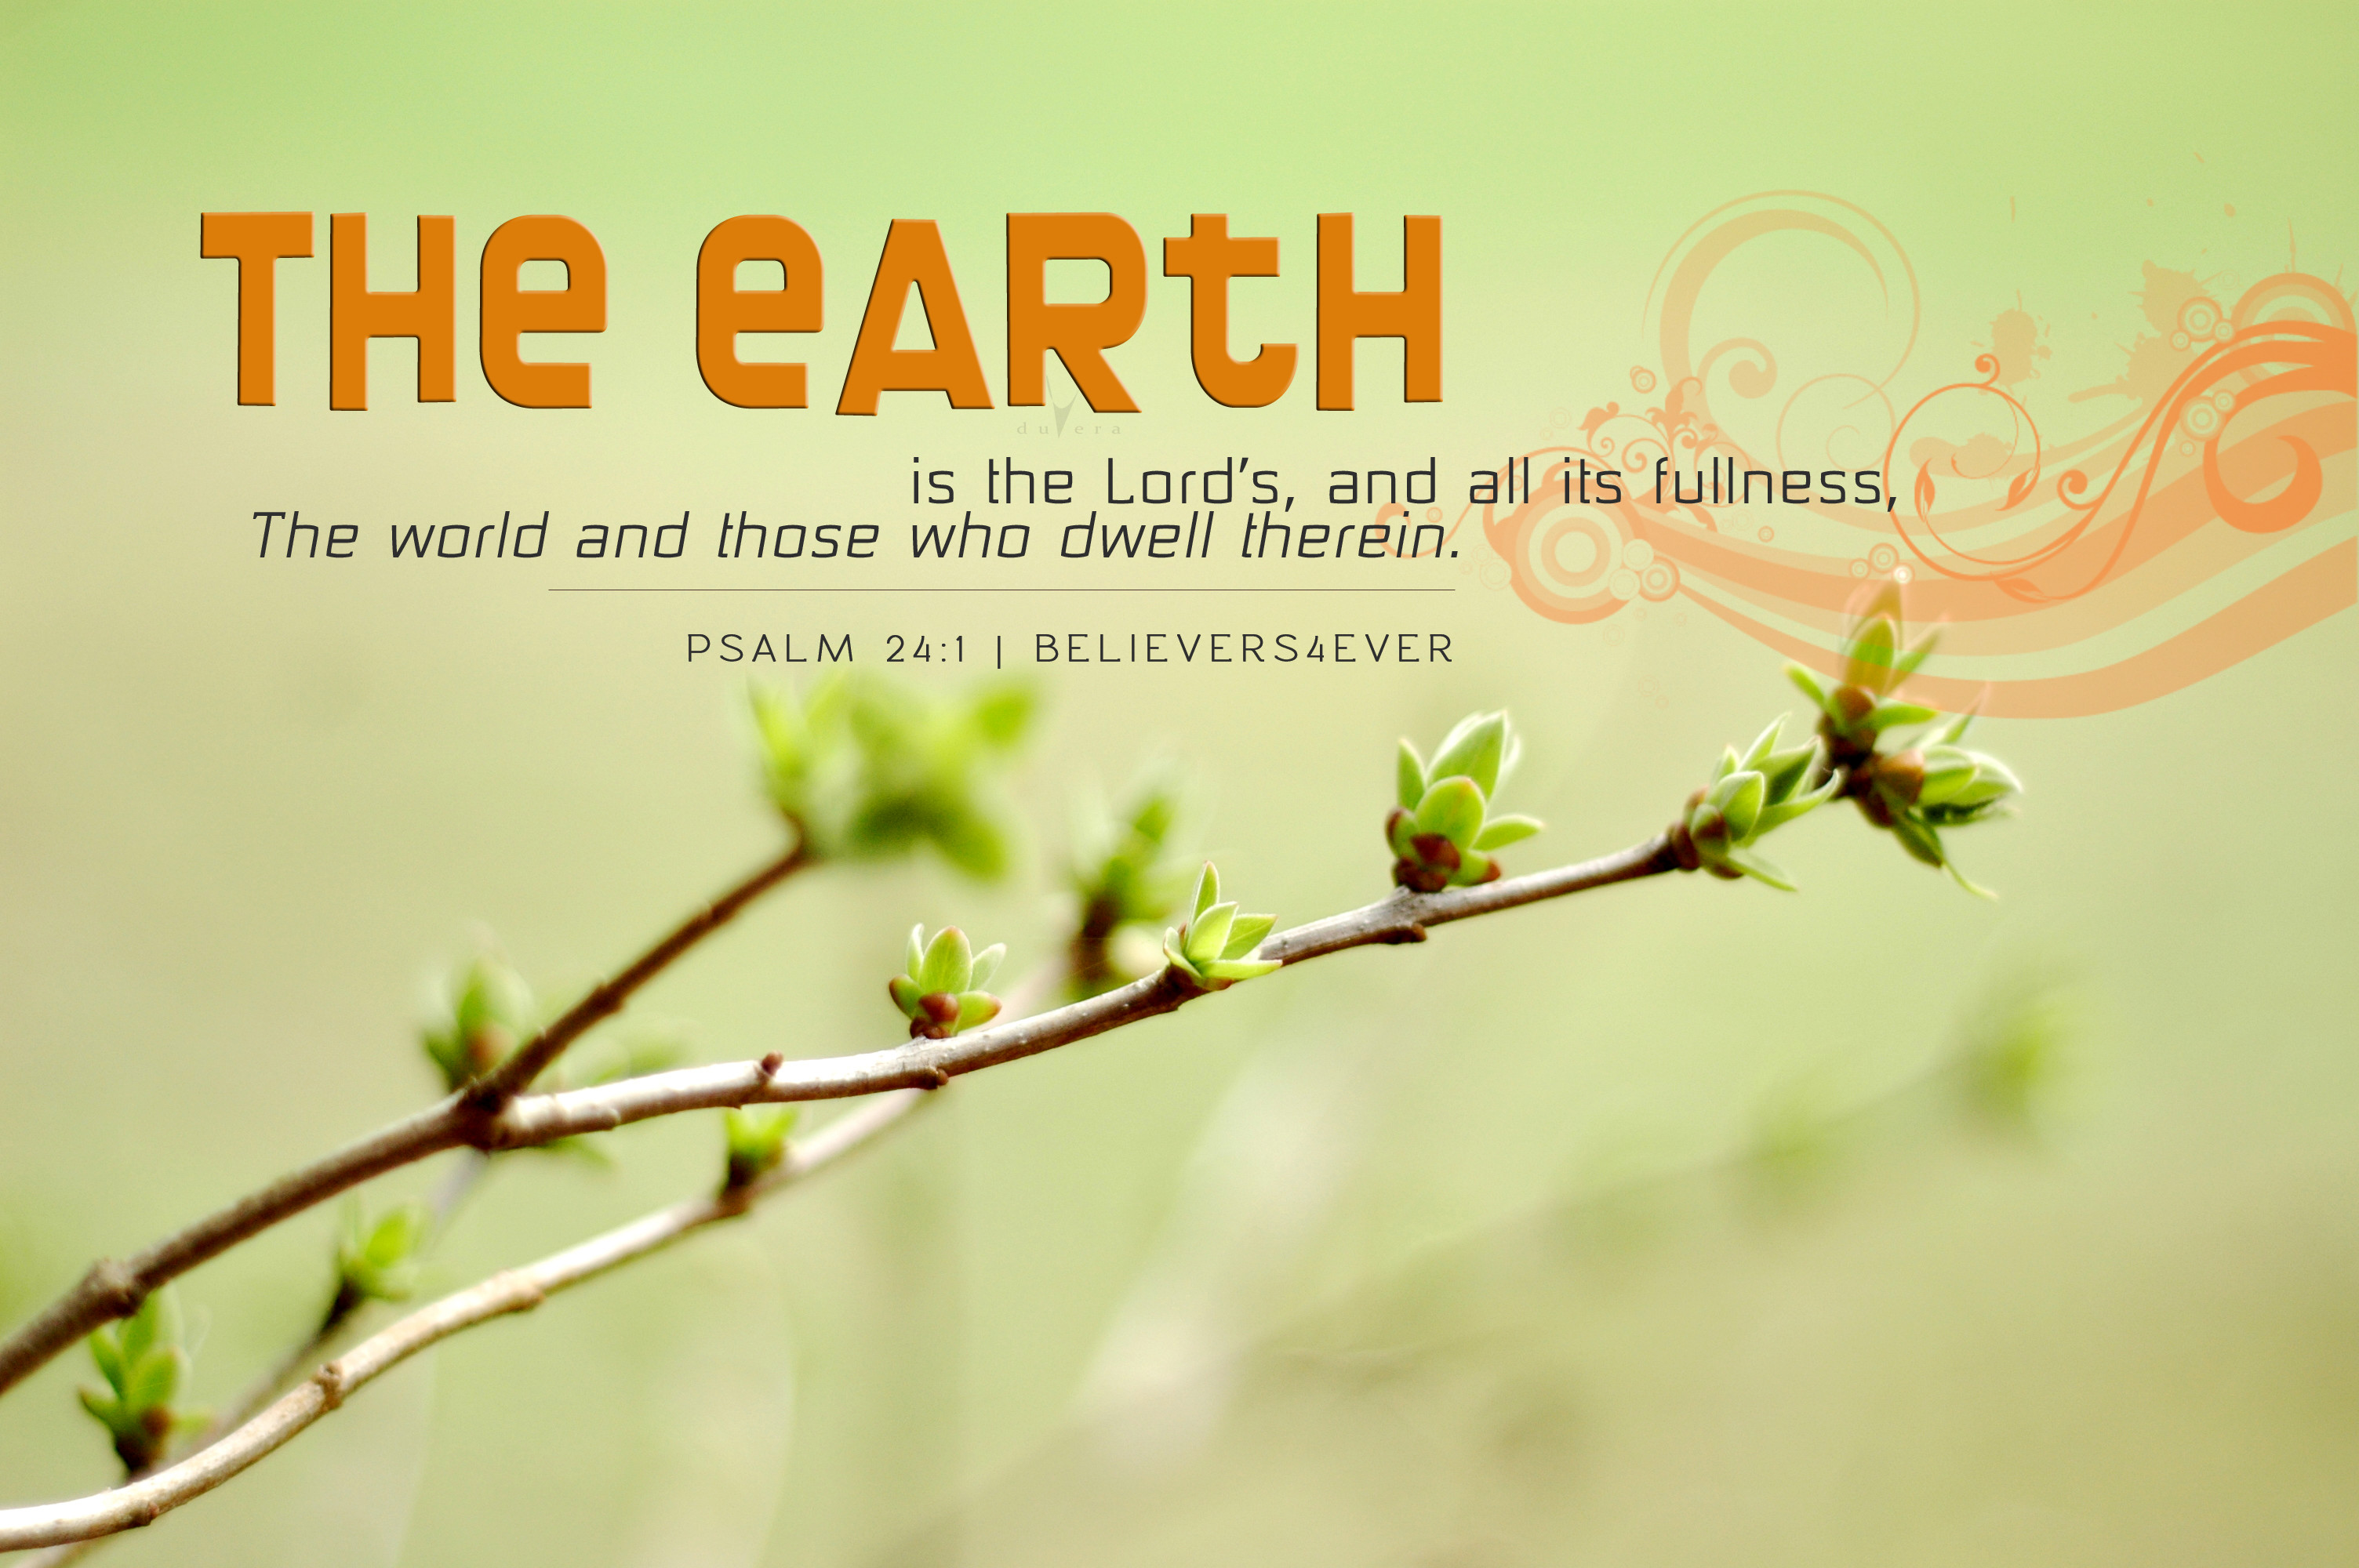 3008x2000 The earth is the Lord's